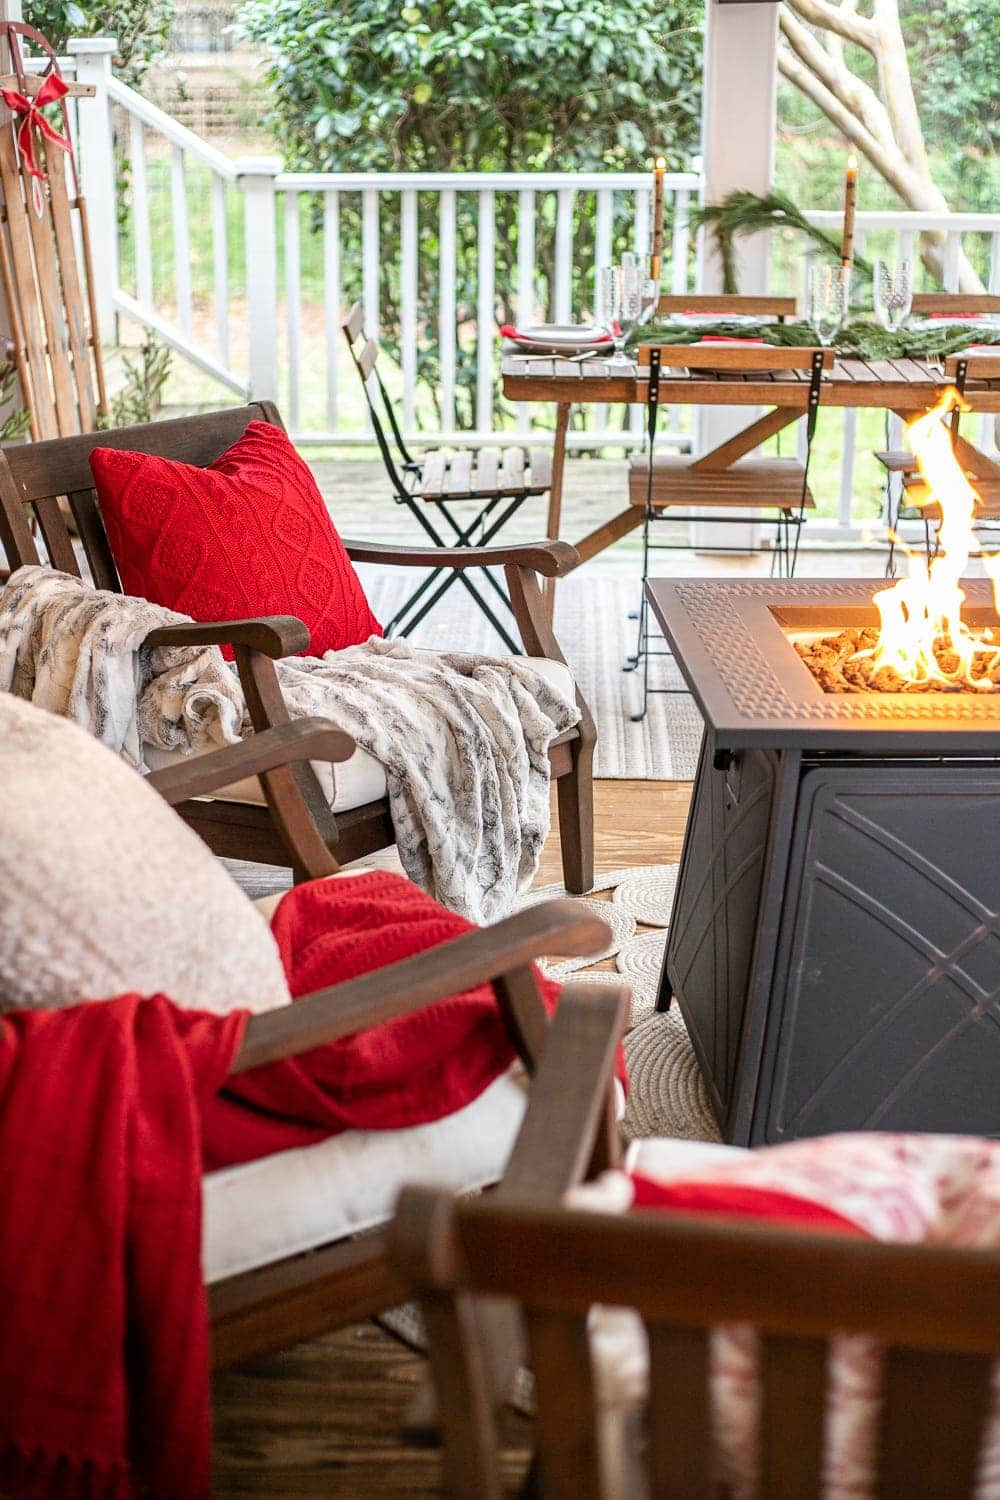 Cozy Christmas back porch with red blankets and pillows and a fire pit table